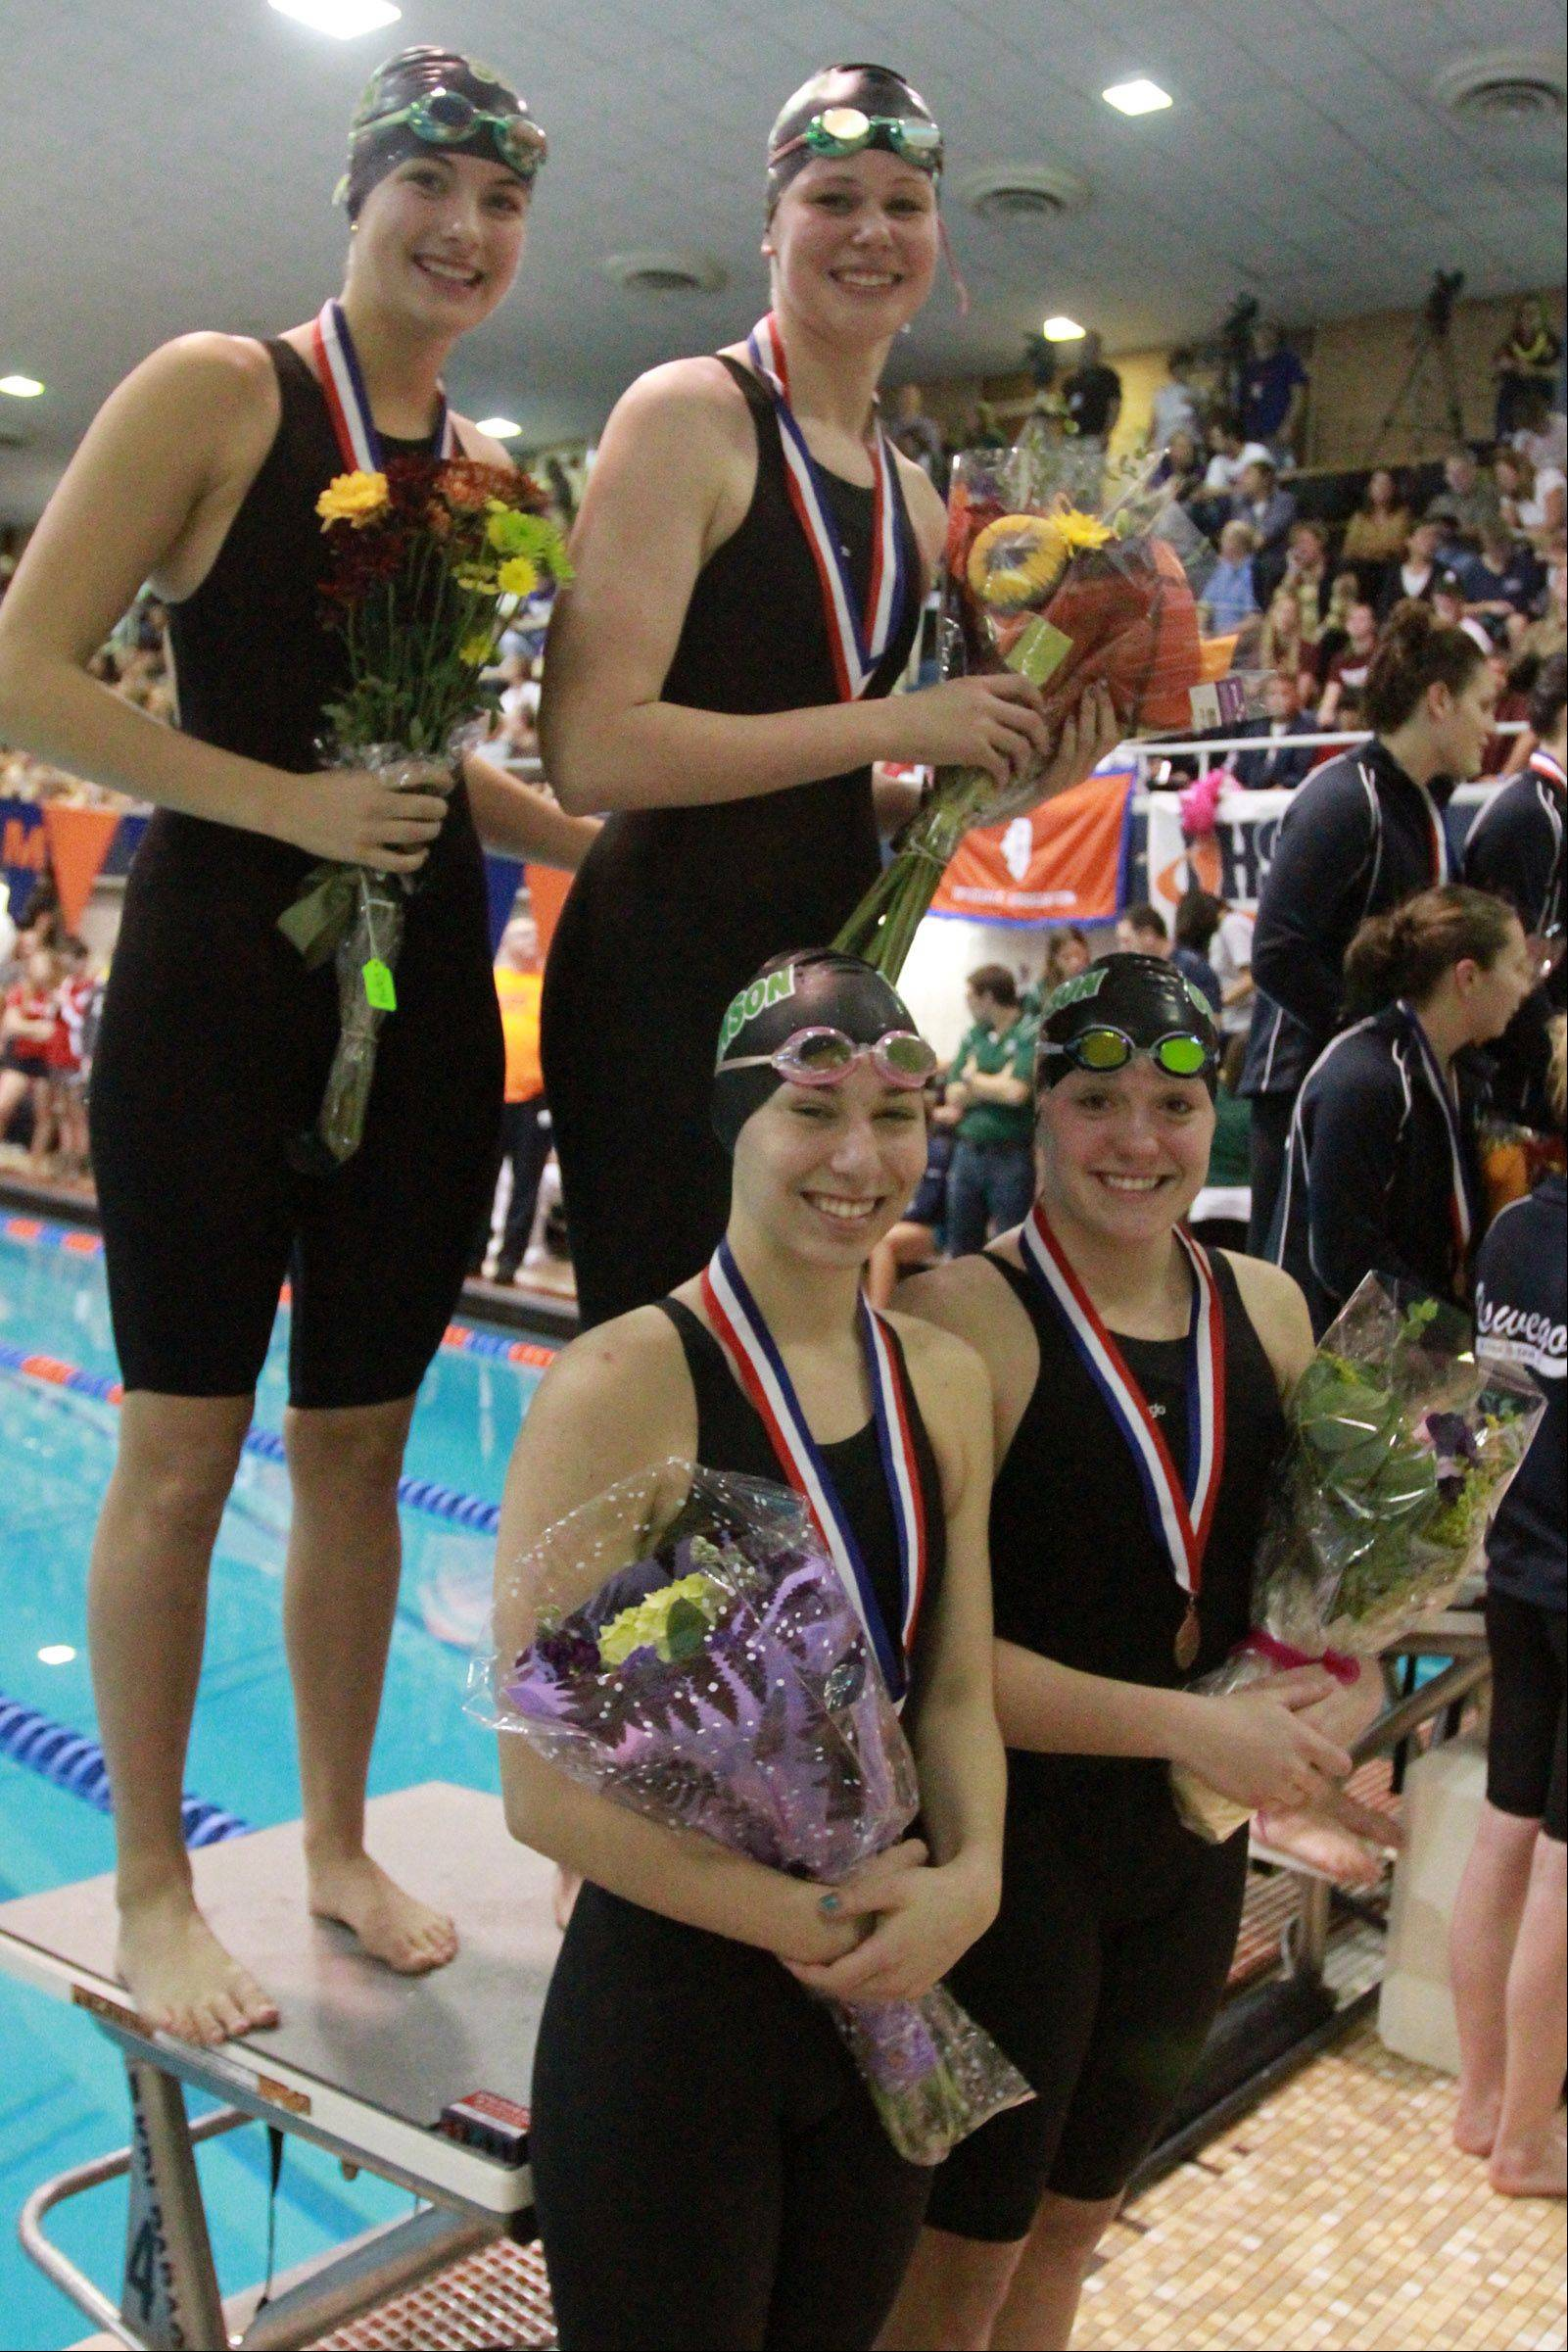 Stevenson's Madison Blaydes, Leah Bloodgood, Rebecca Hannon, and Casey Kirby placed tenth in the 200-yard medley relay at the IHSA state championships in Evanston on Saturday.